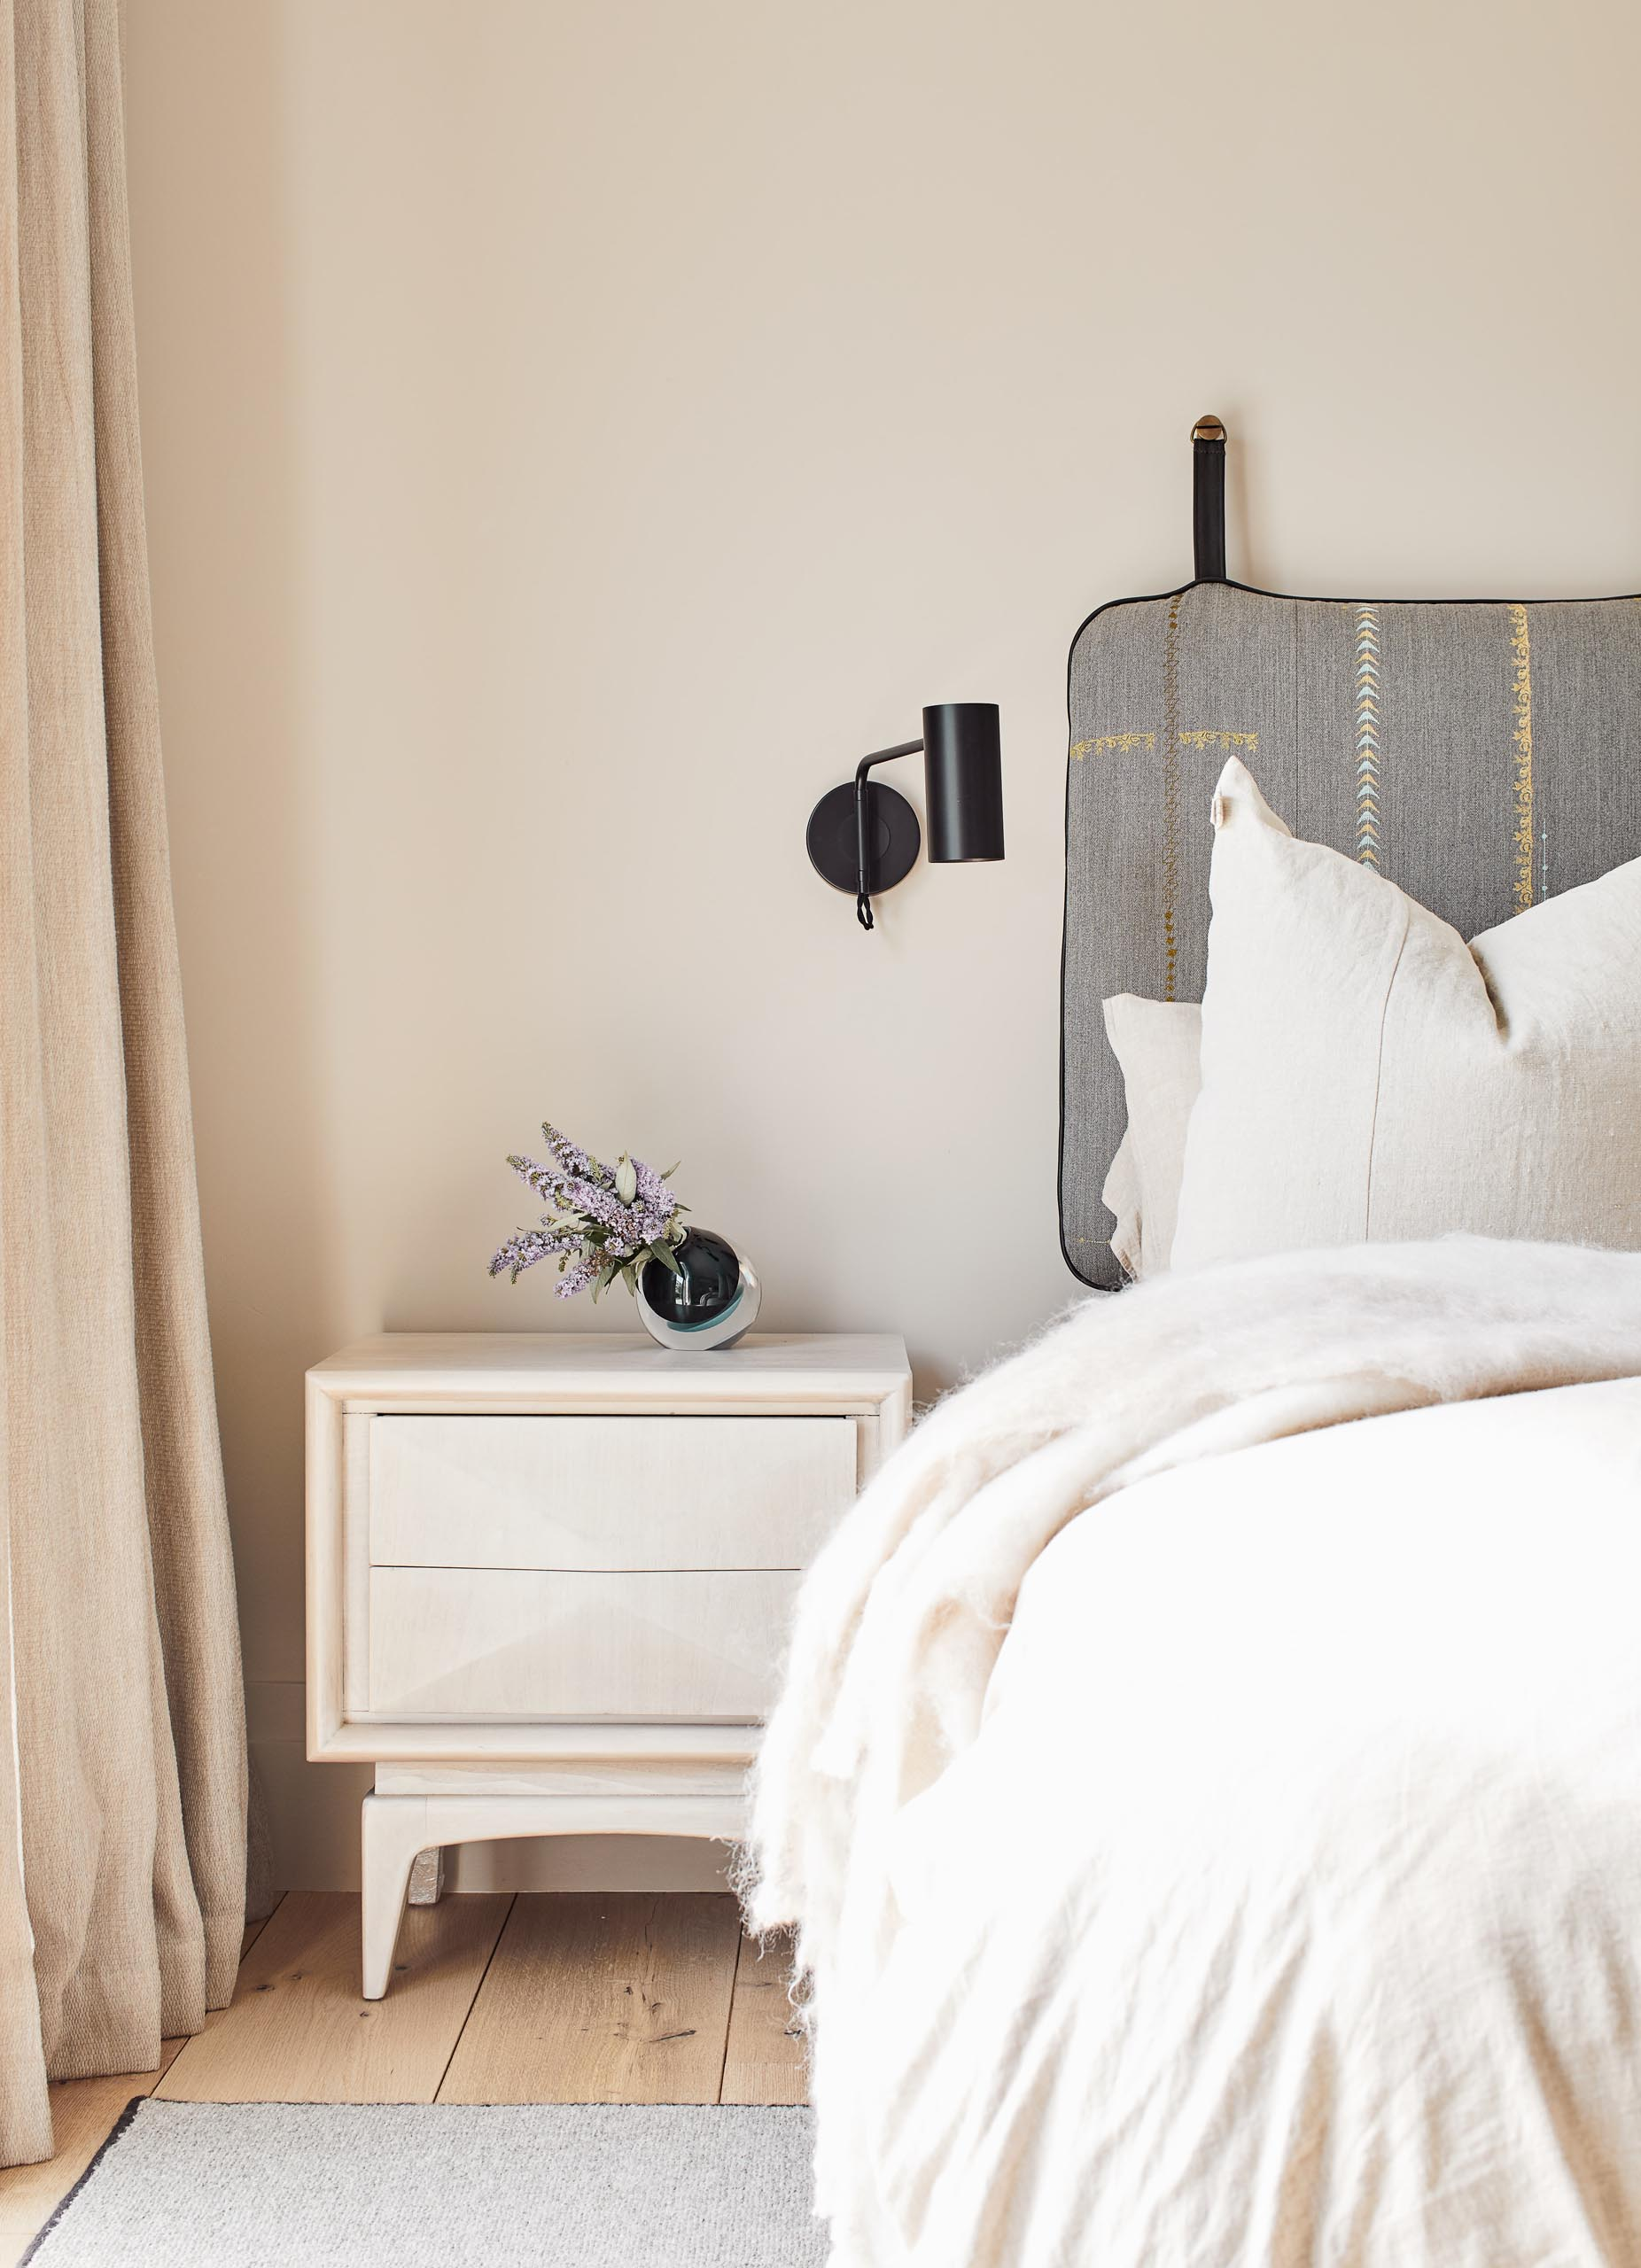 In this guest bedroom, the upholstered headboard hangs from the wall, while minimalist black sconces are positioned above bedside tables.